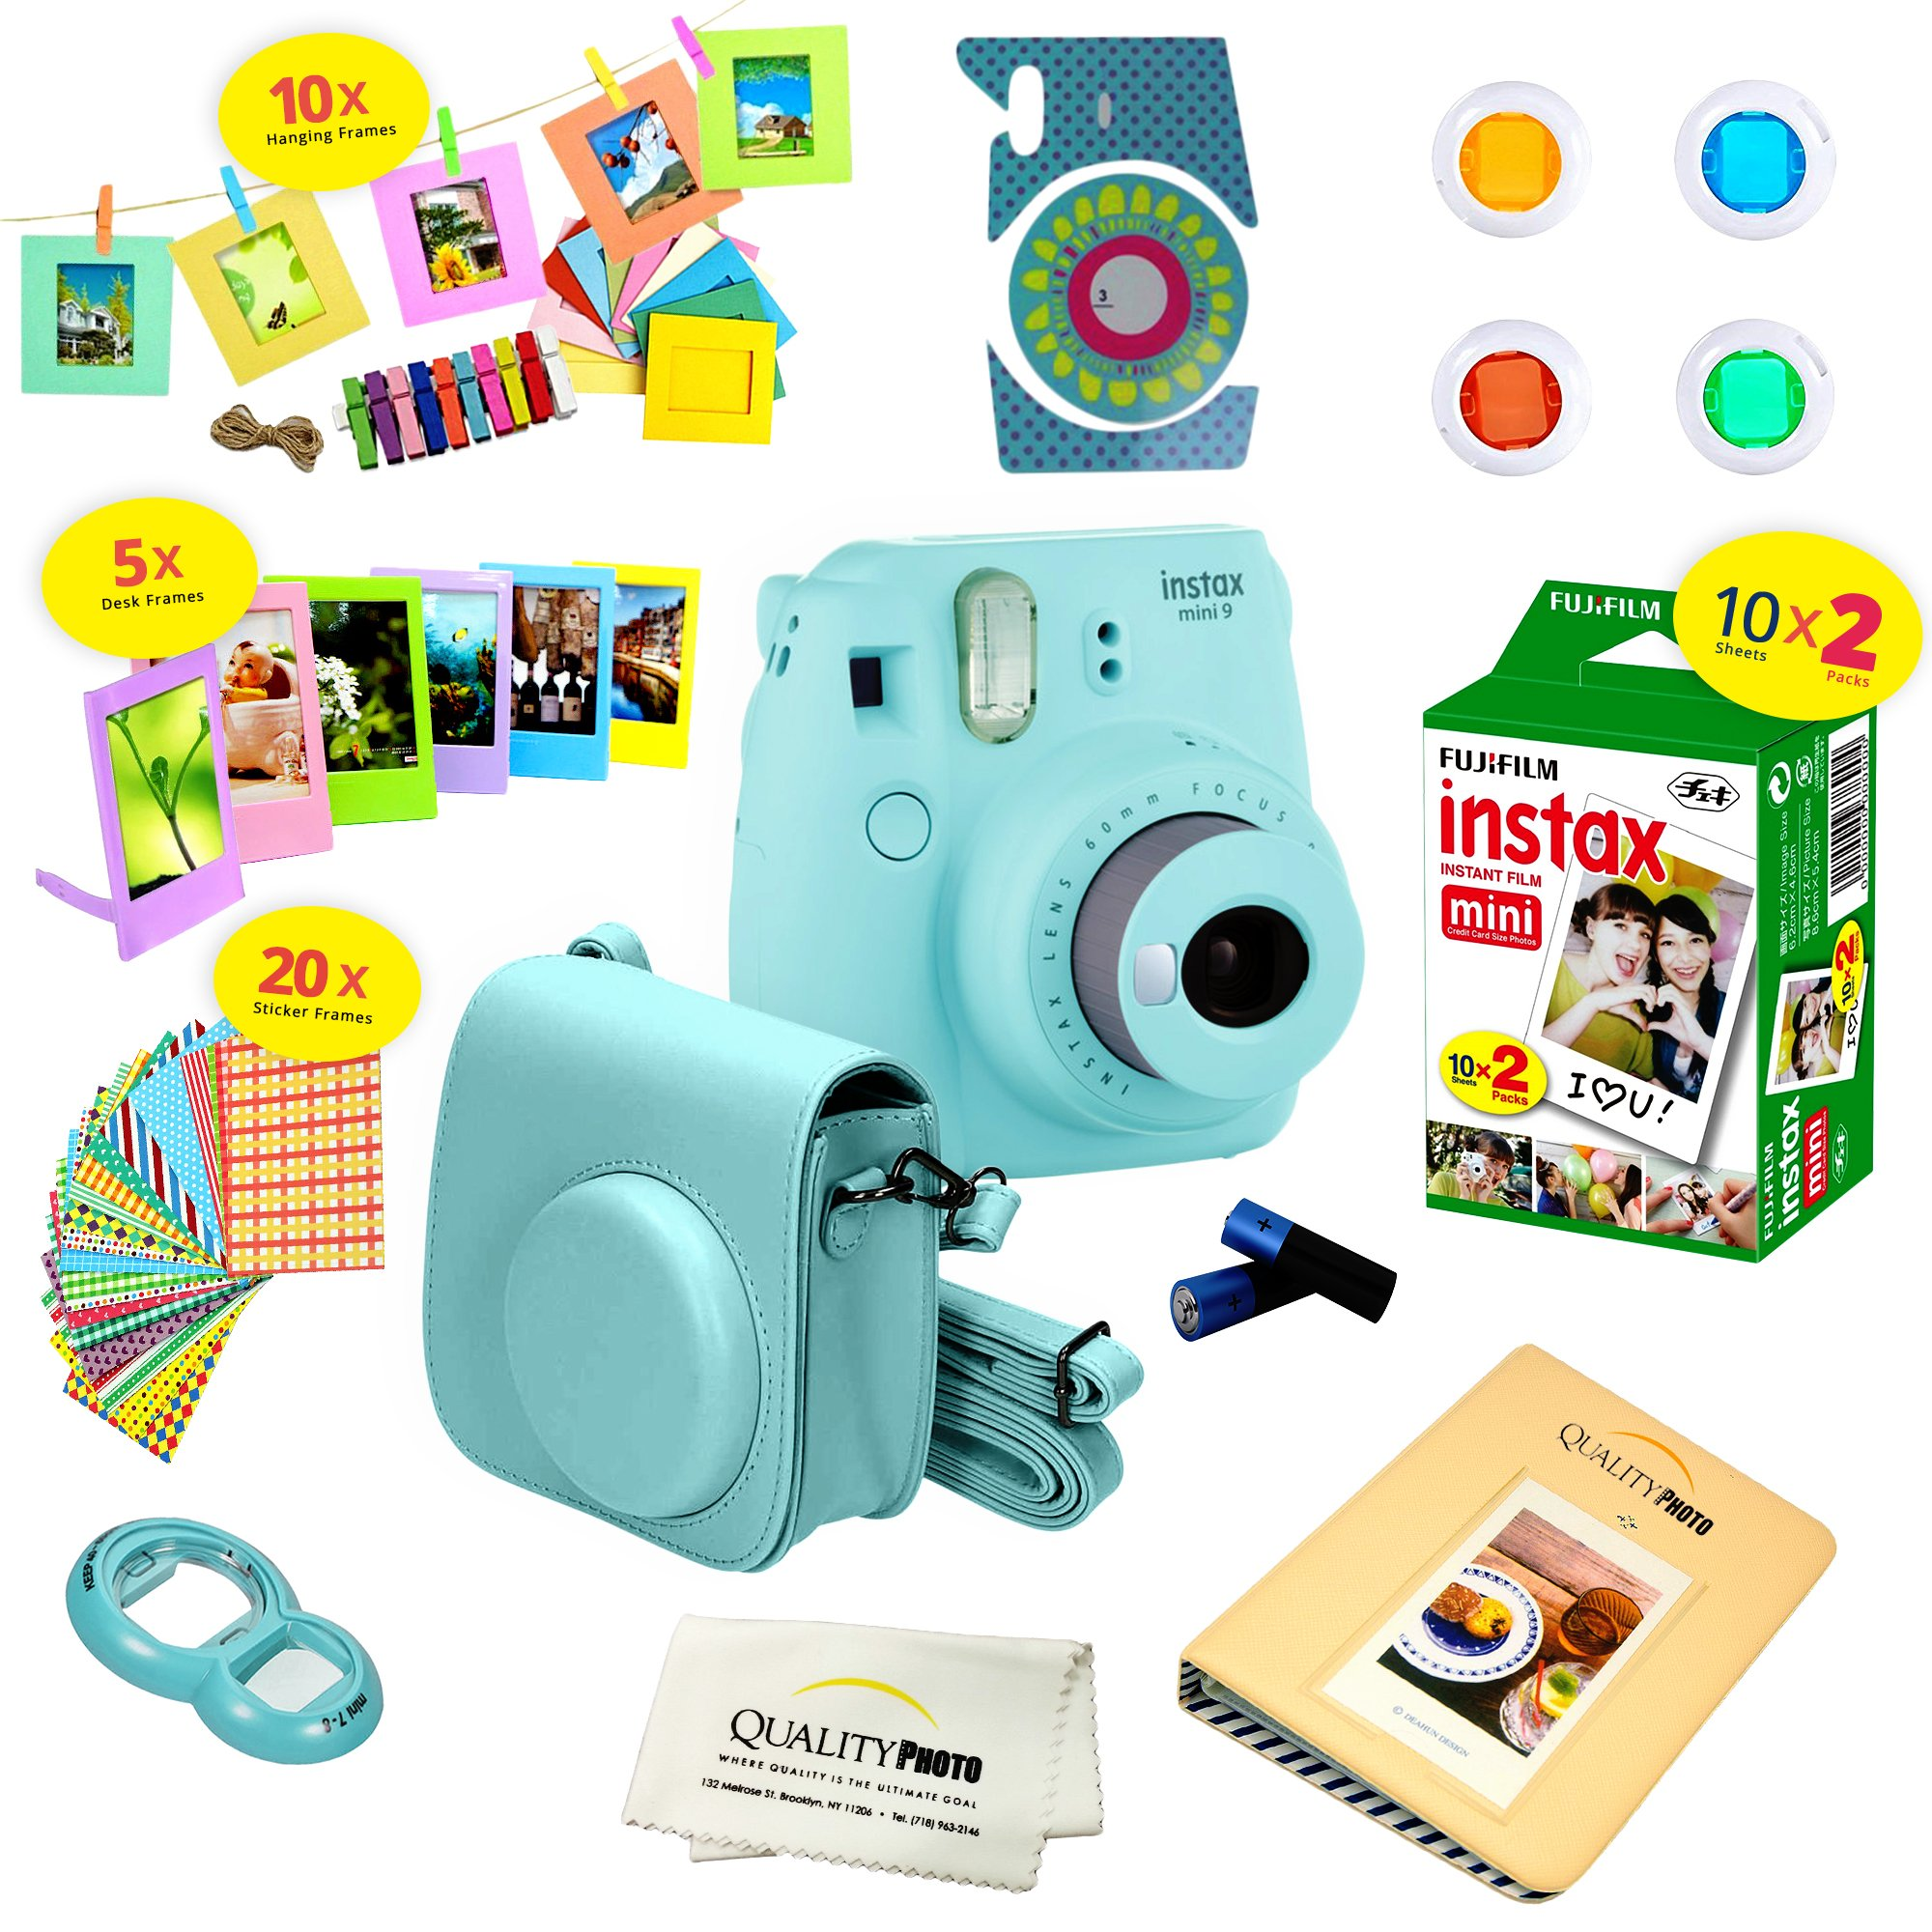 Fujifilm Instax Mini 9 Instant Camera ICE BLUE w/ Film and Accessories – Polaroid Camera Kit by Fujifilm